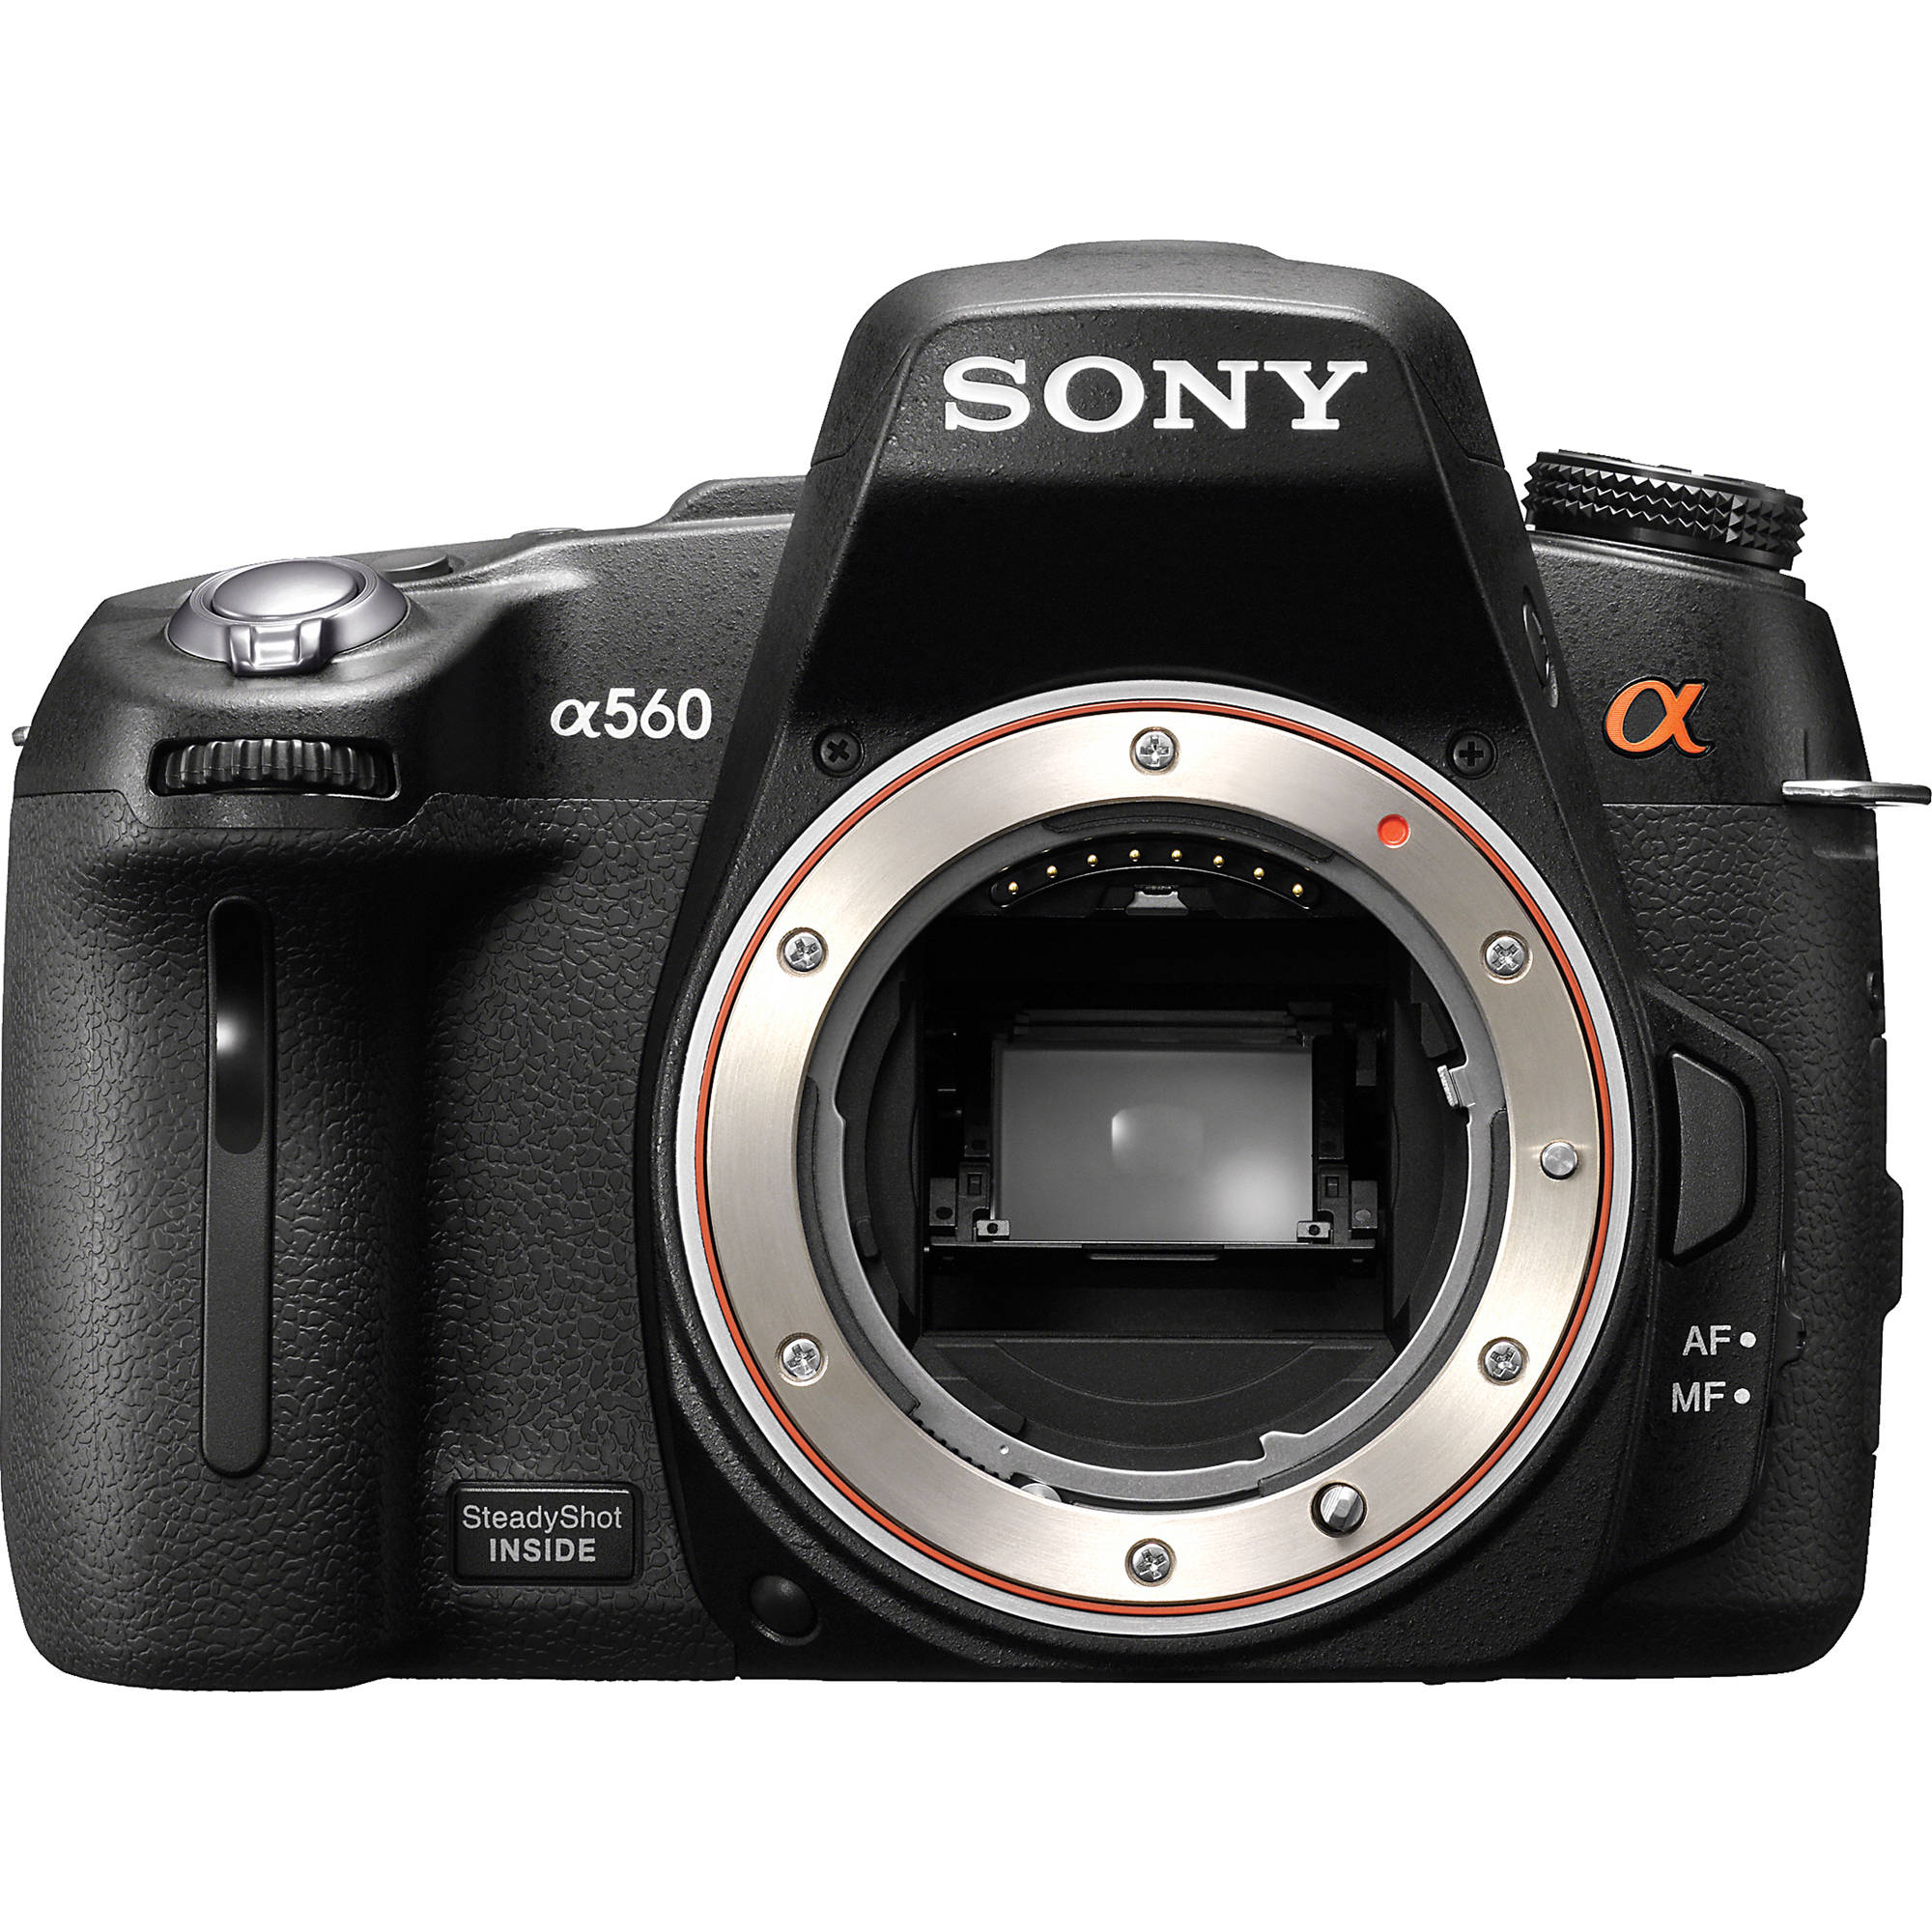 Sony_DSLR_A560_Alpha_DSLR_A560_Digital_Camera_731660.jpg (2000×2000)